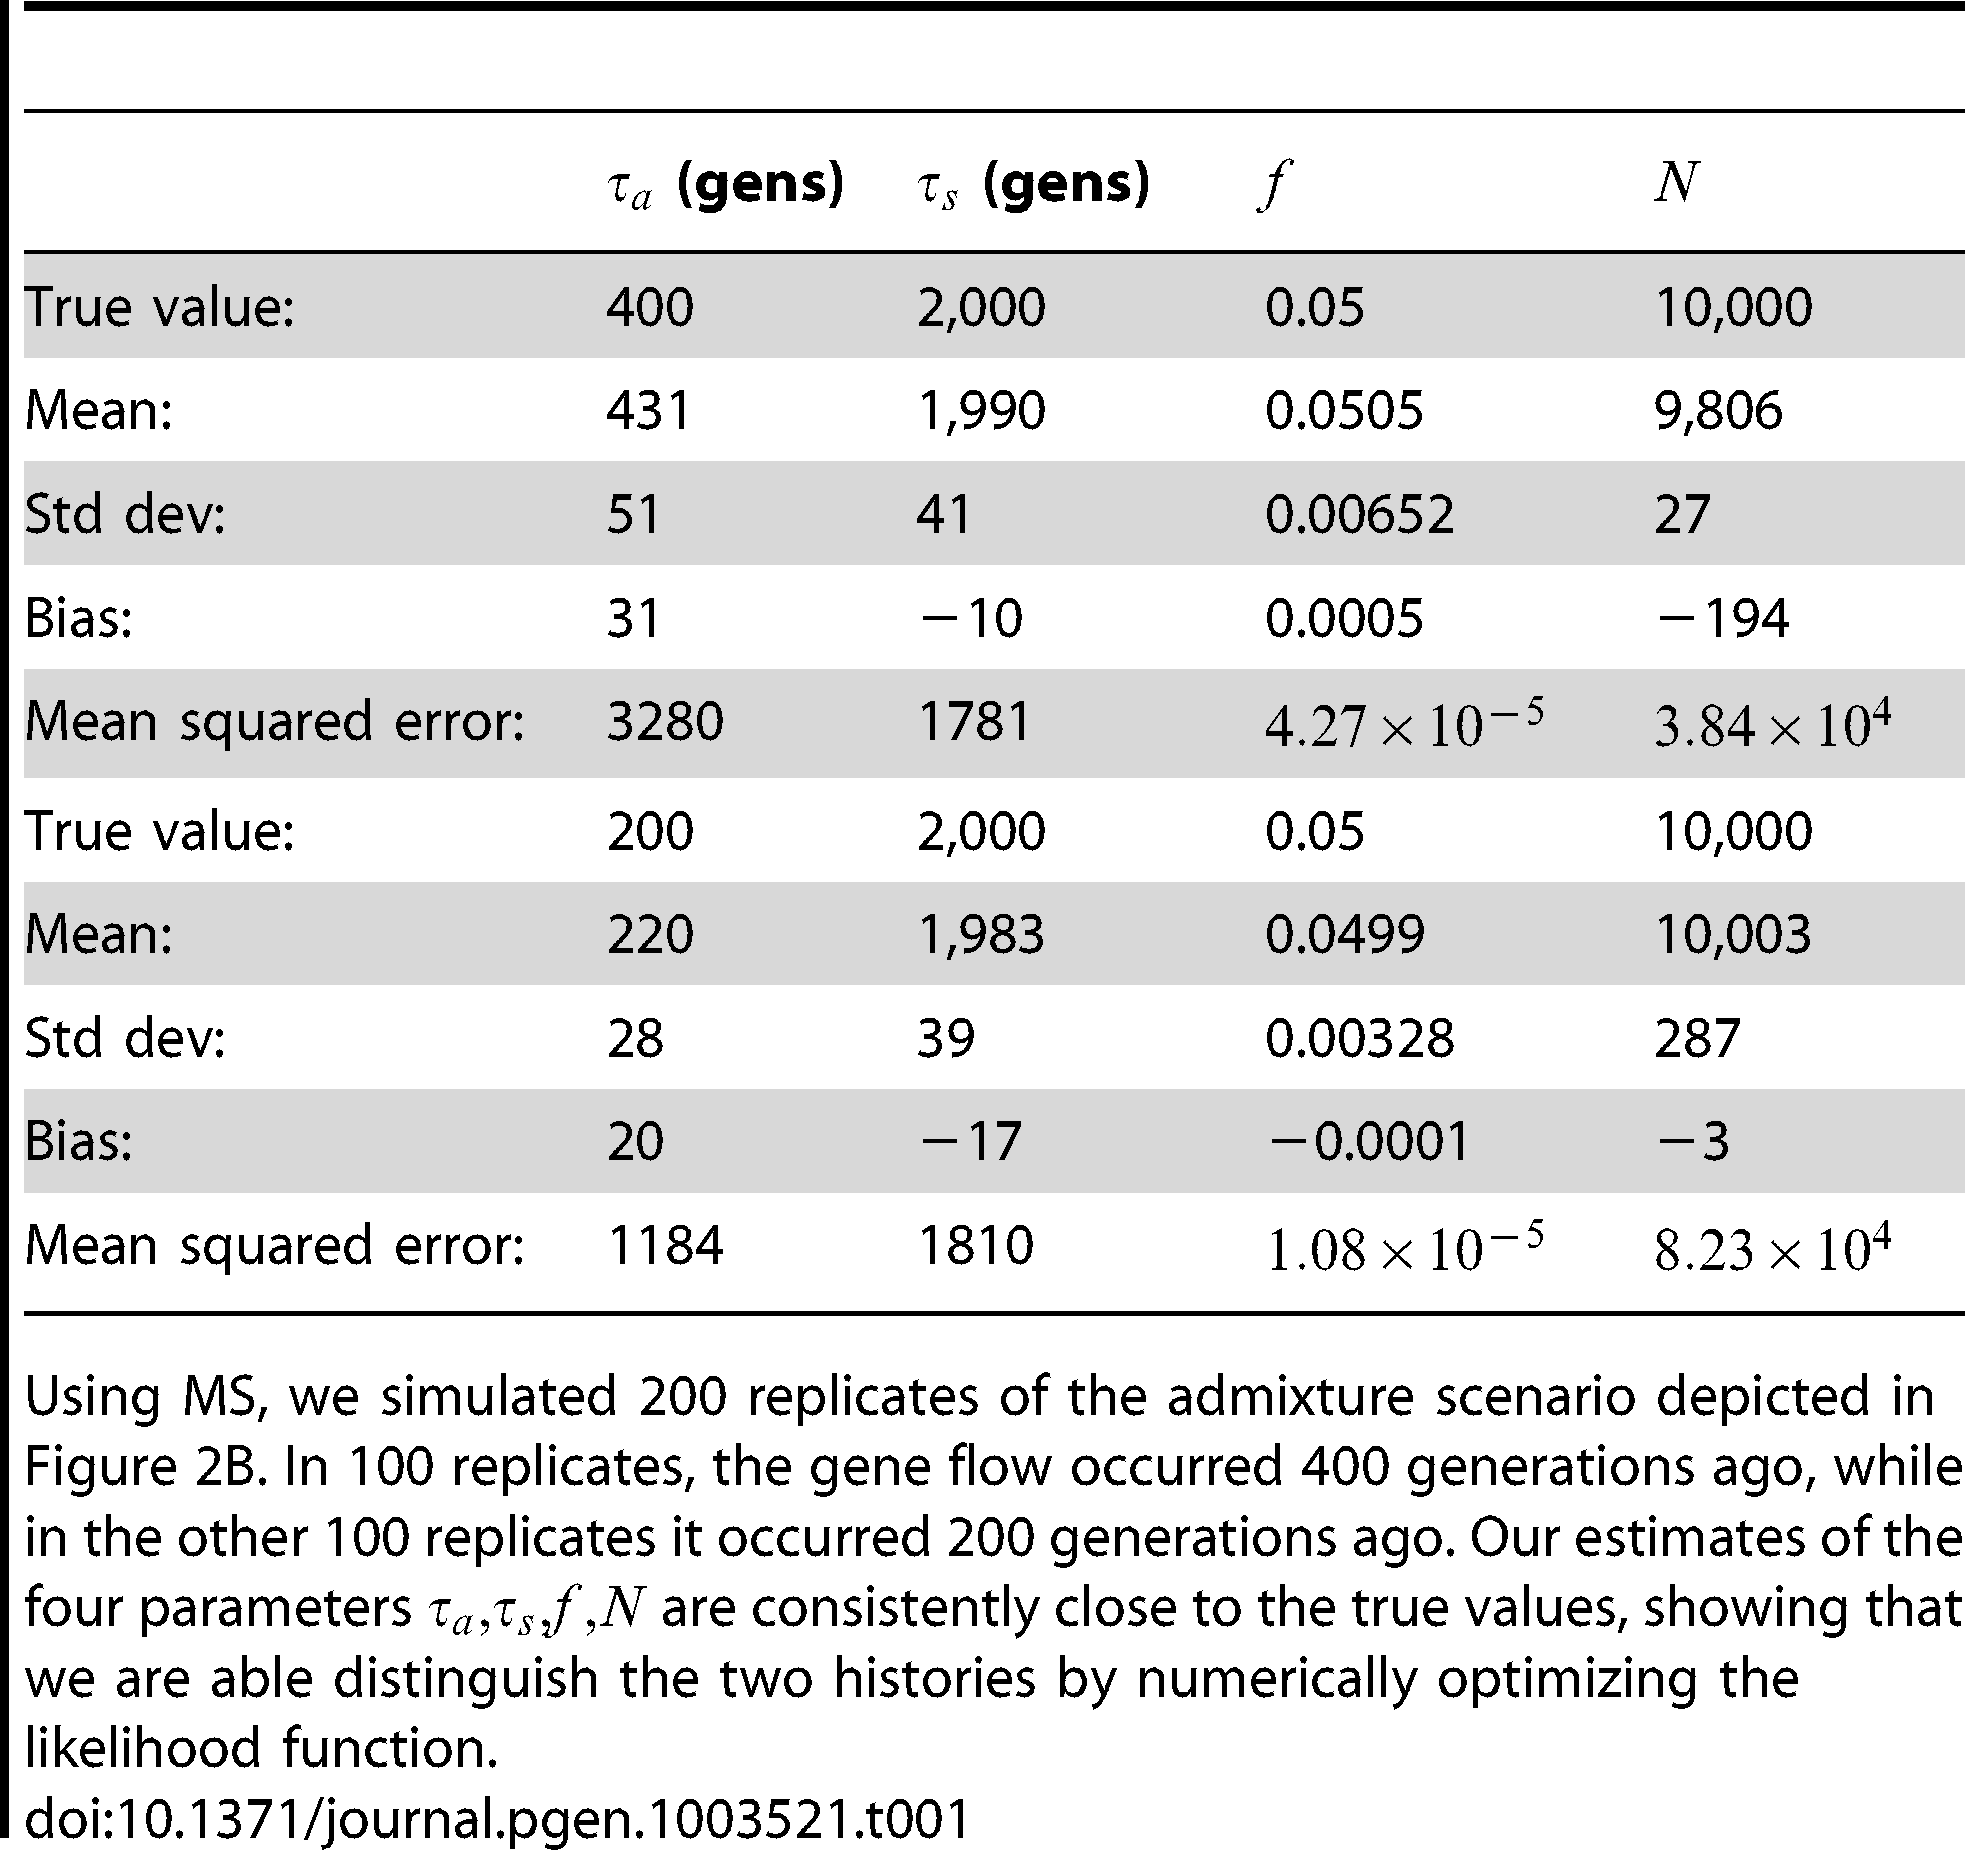 Inferring the parameters of a simple admixture scenario.